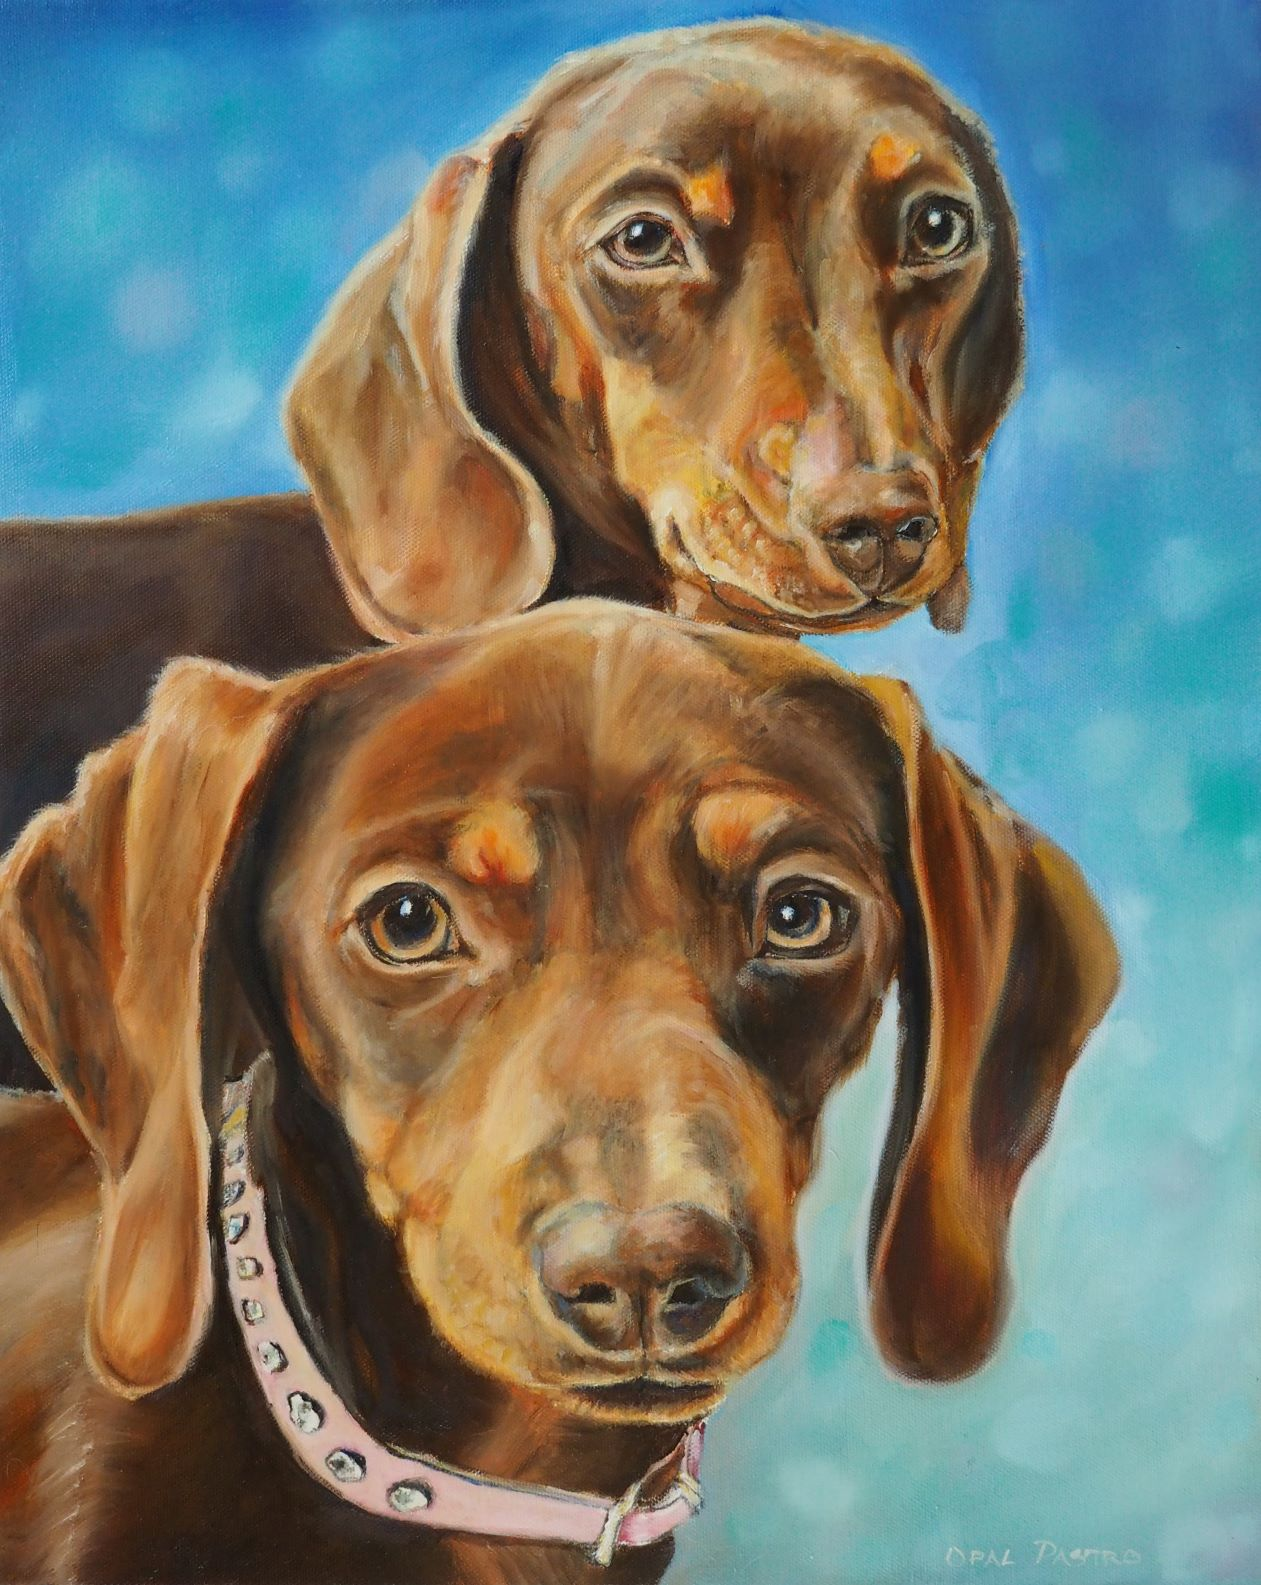 DOG PAINTING OF TWO DACHSHUNDS WITH BLUE BACKGROUND BY OPAL PASTRO ART